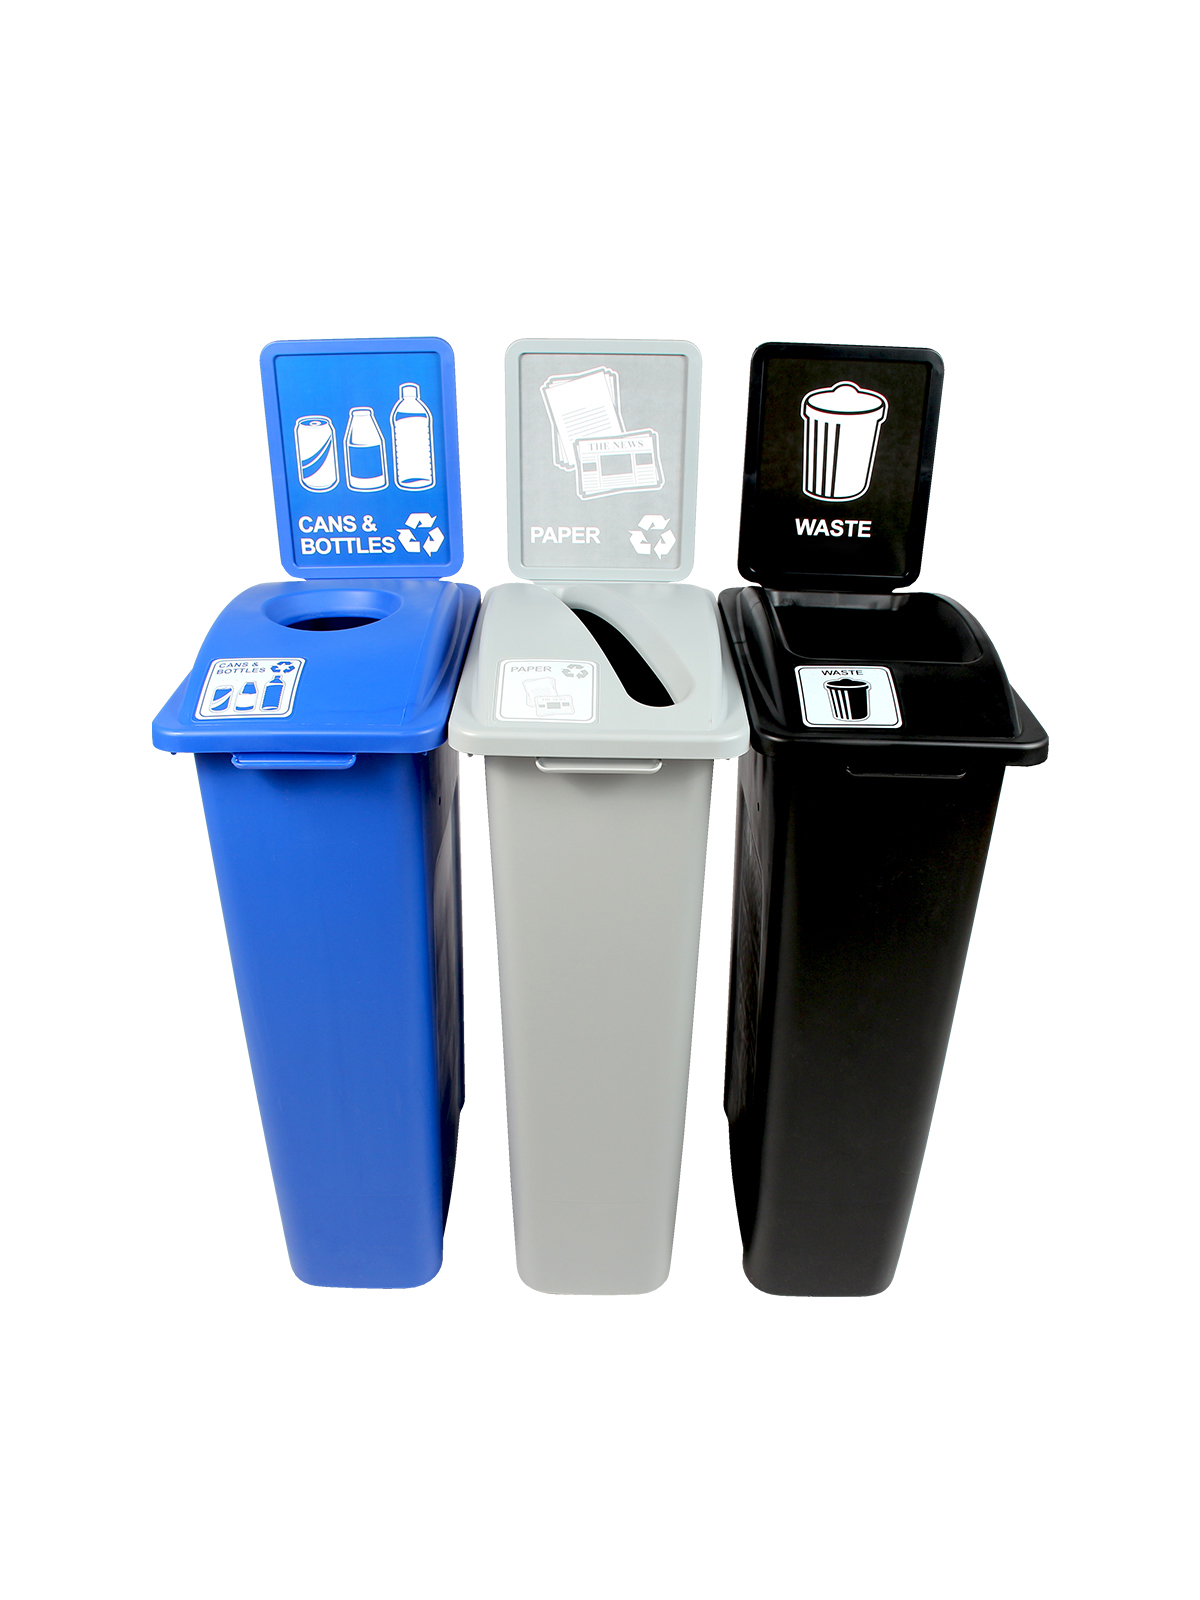 WASTE WATCHER - Triple - Cans & Bottles-Paper-Waste - Circle-Slot-Full - Blue-Grey-Black